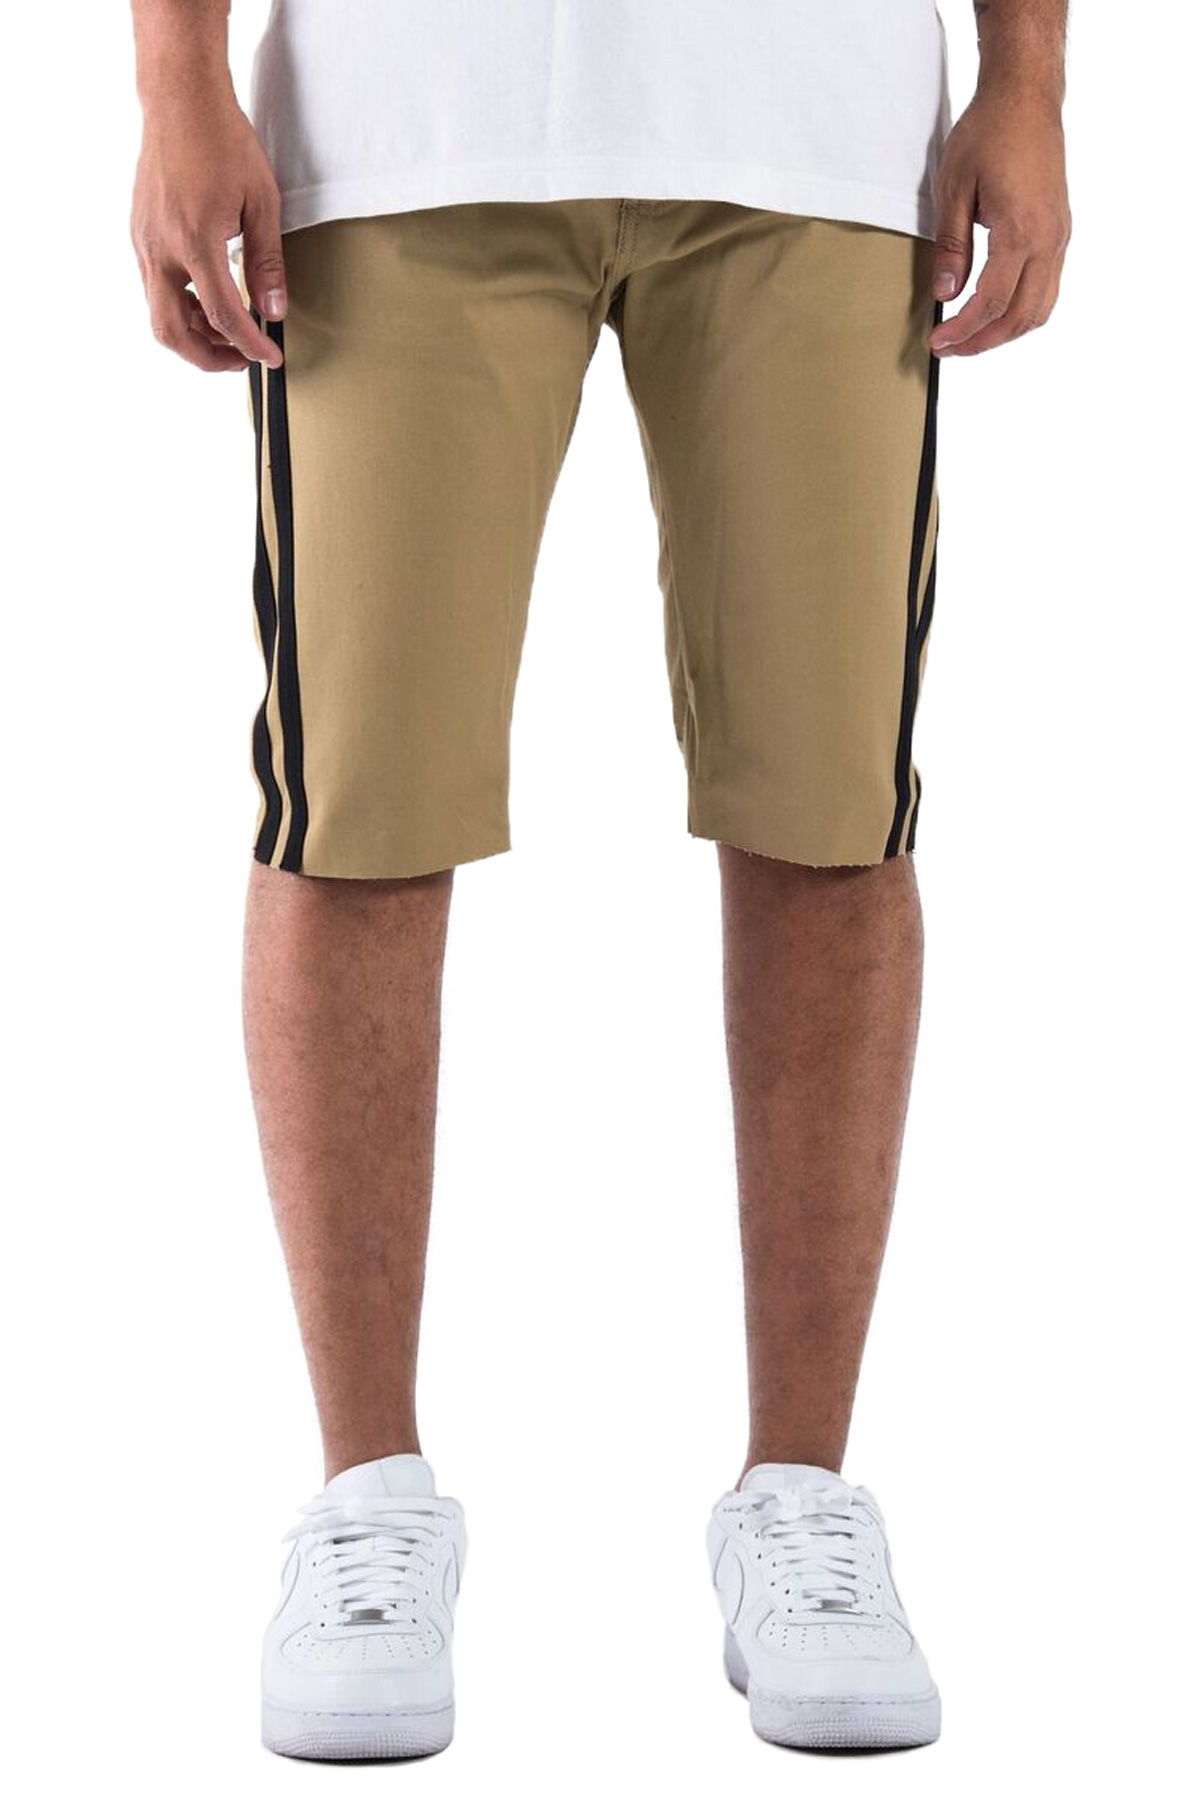 The Union V2 Trofeo Track Striped Shorts in Tan and BLack